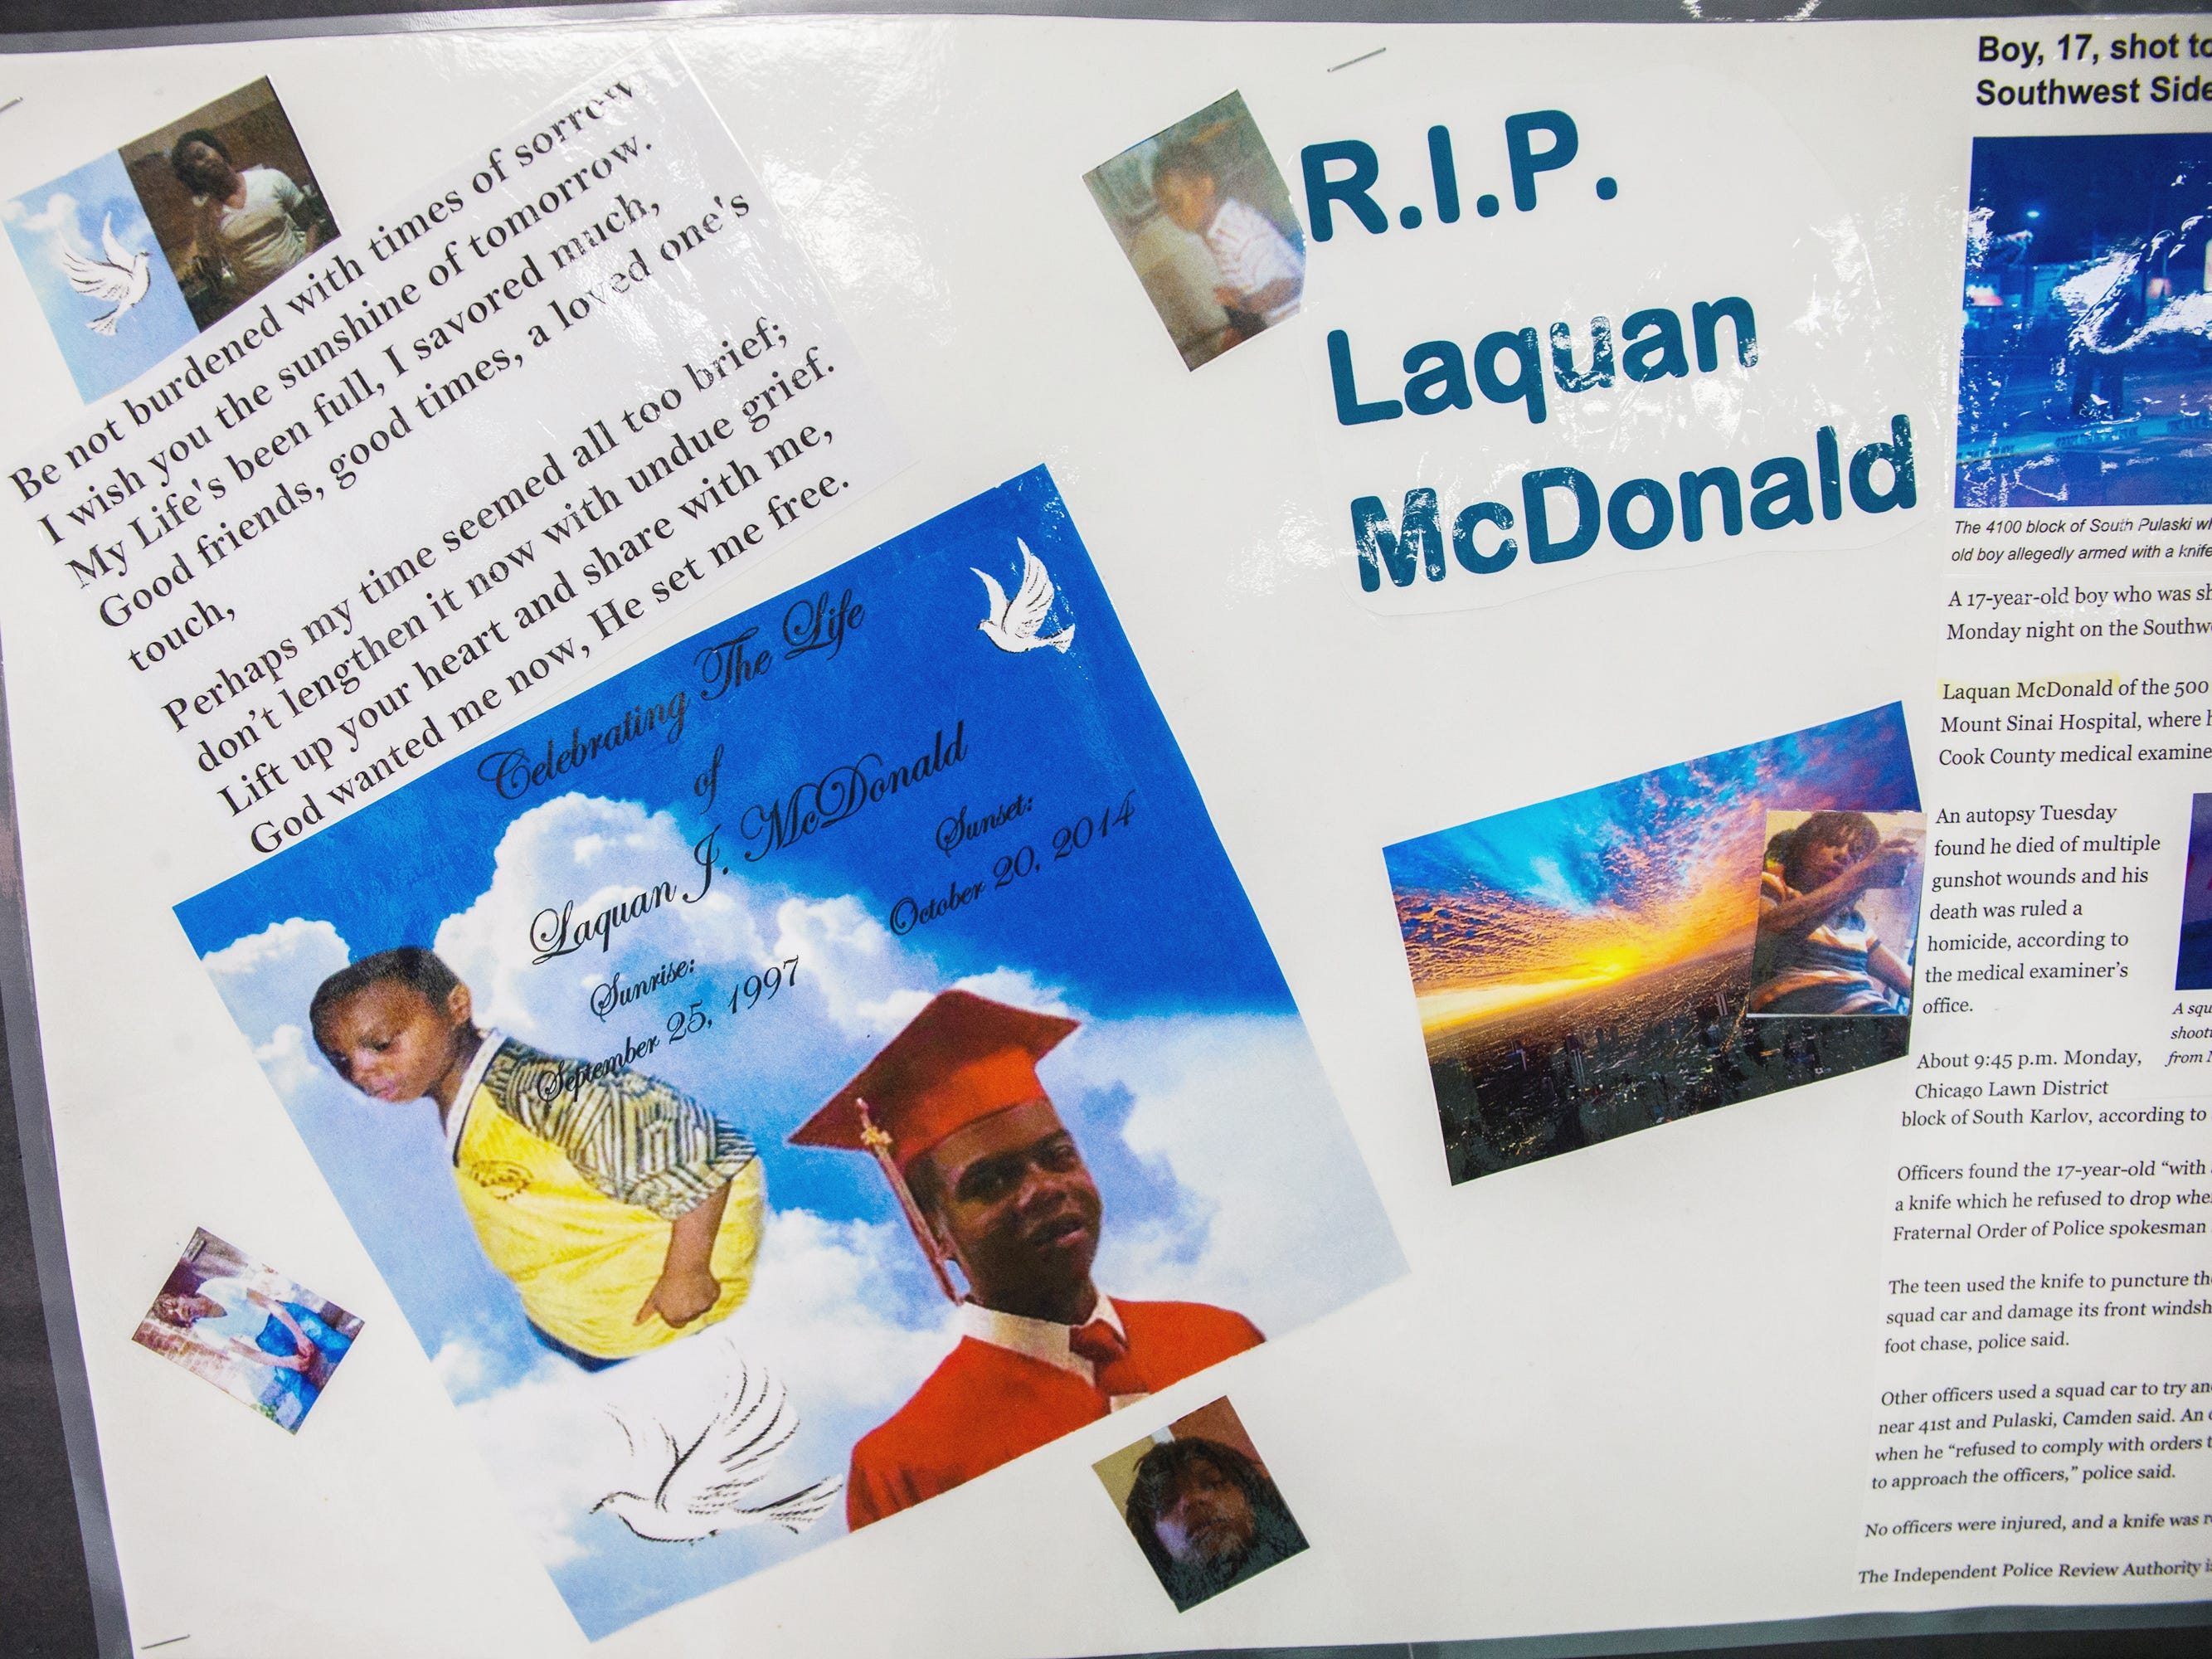 A memorial to 17-year-old Laquan McDonald and other victims of violence at the Sullivan House Alternative High School in Chicago is seen on April 17, 2015. McDonald was shot 16 times by Chicago police Officer Jason Van Dyke in October 2014. A judge has ordered the video of the shooting to be made public.